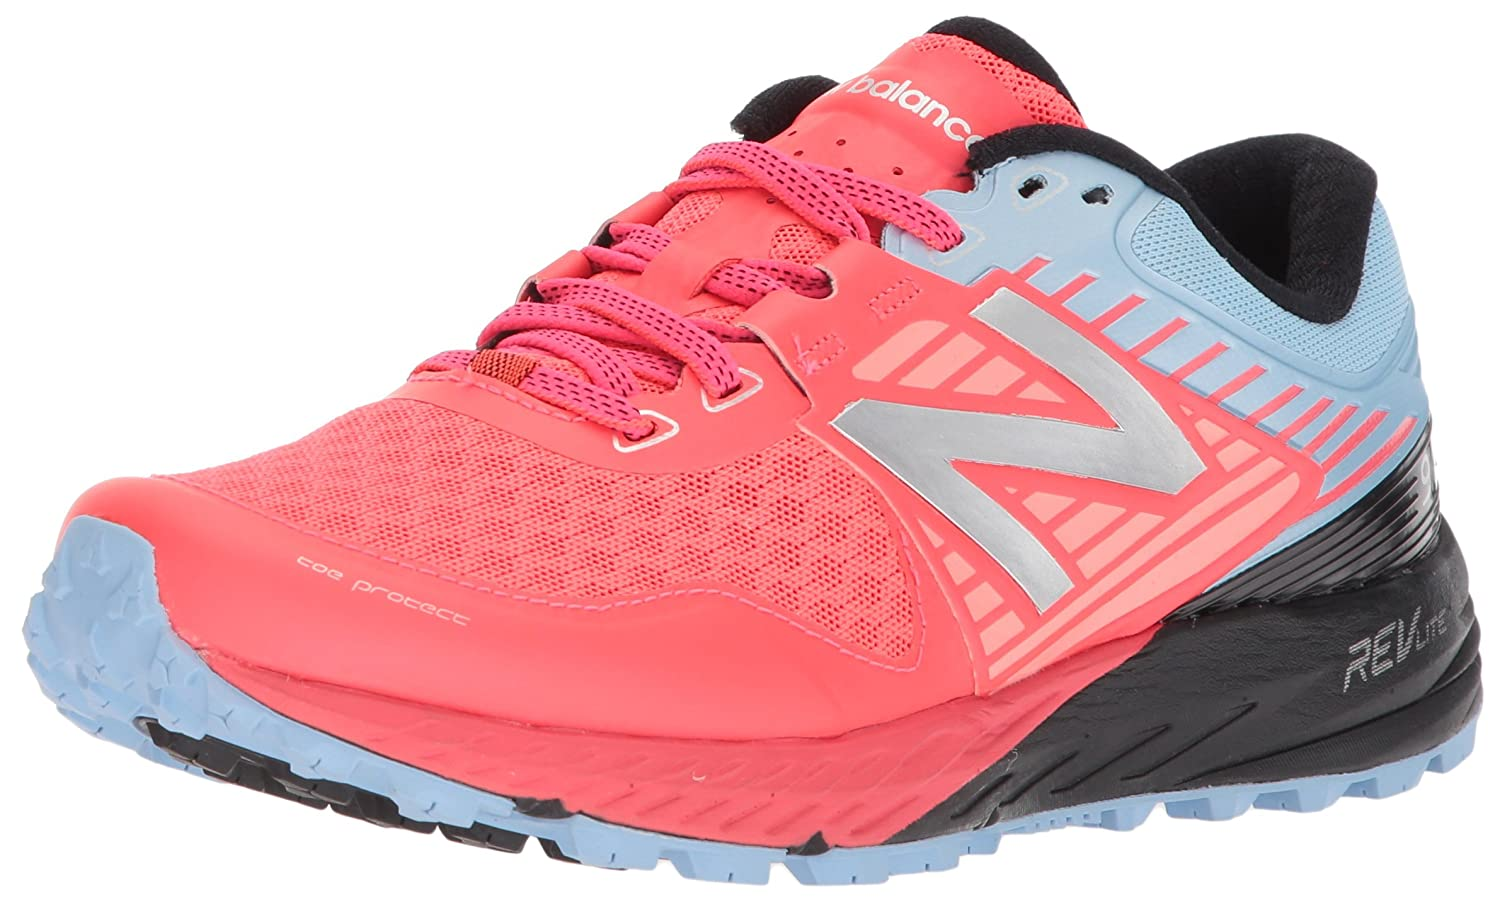 New Balance Women's 910 V4 Trail Running Shoe B06XSDC8RY 65 B US|Vivid Coral/Clear Sky